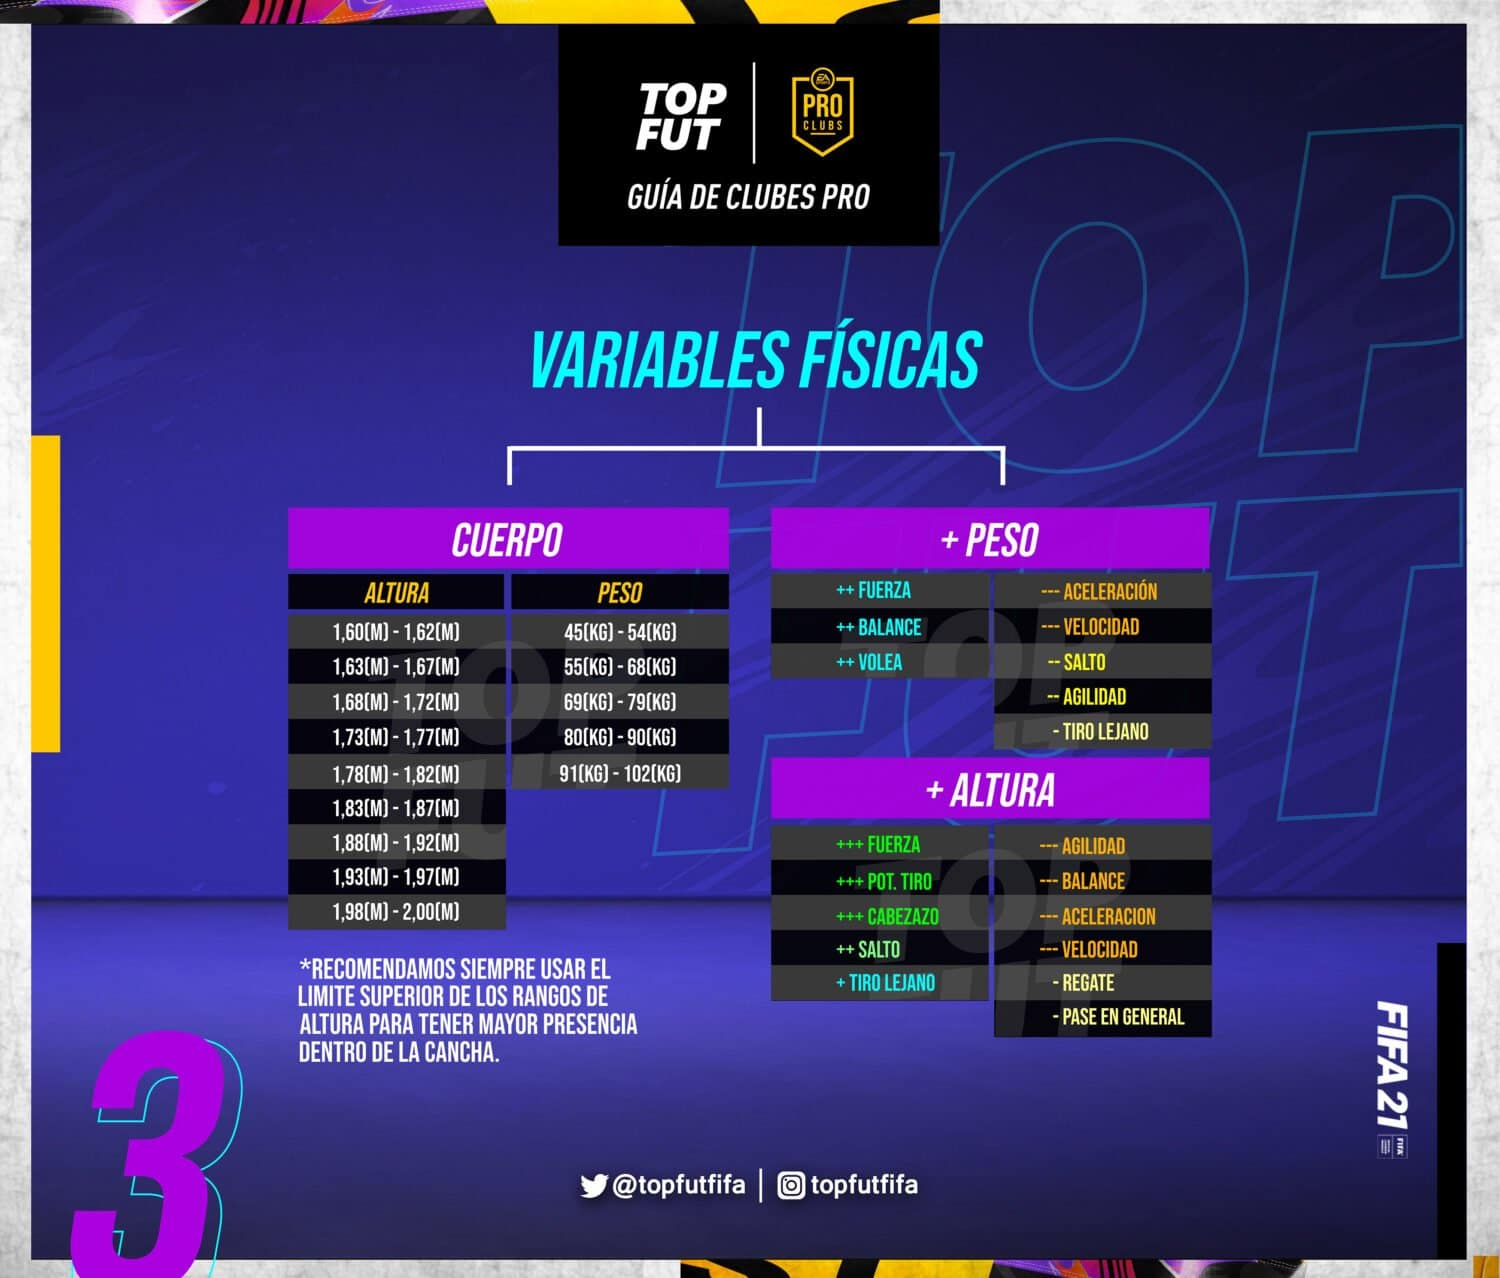 Variables Fisicas Clubes Pro FIFA 21